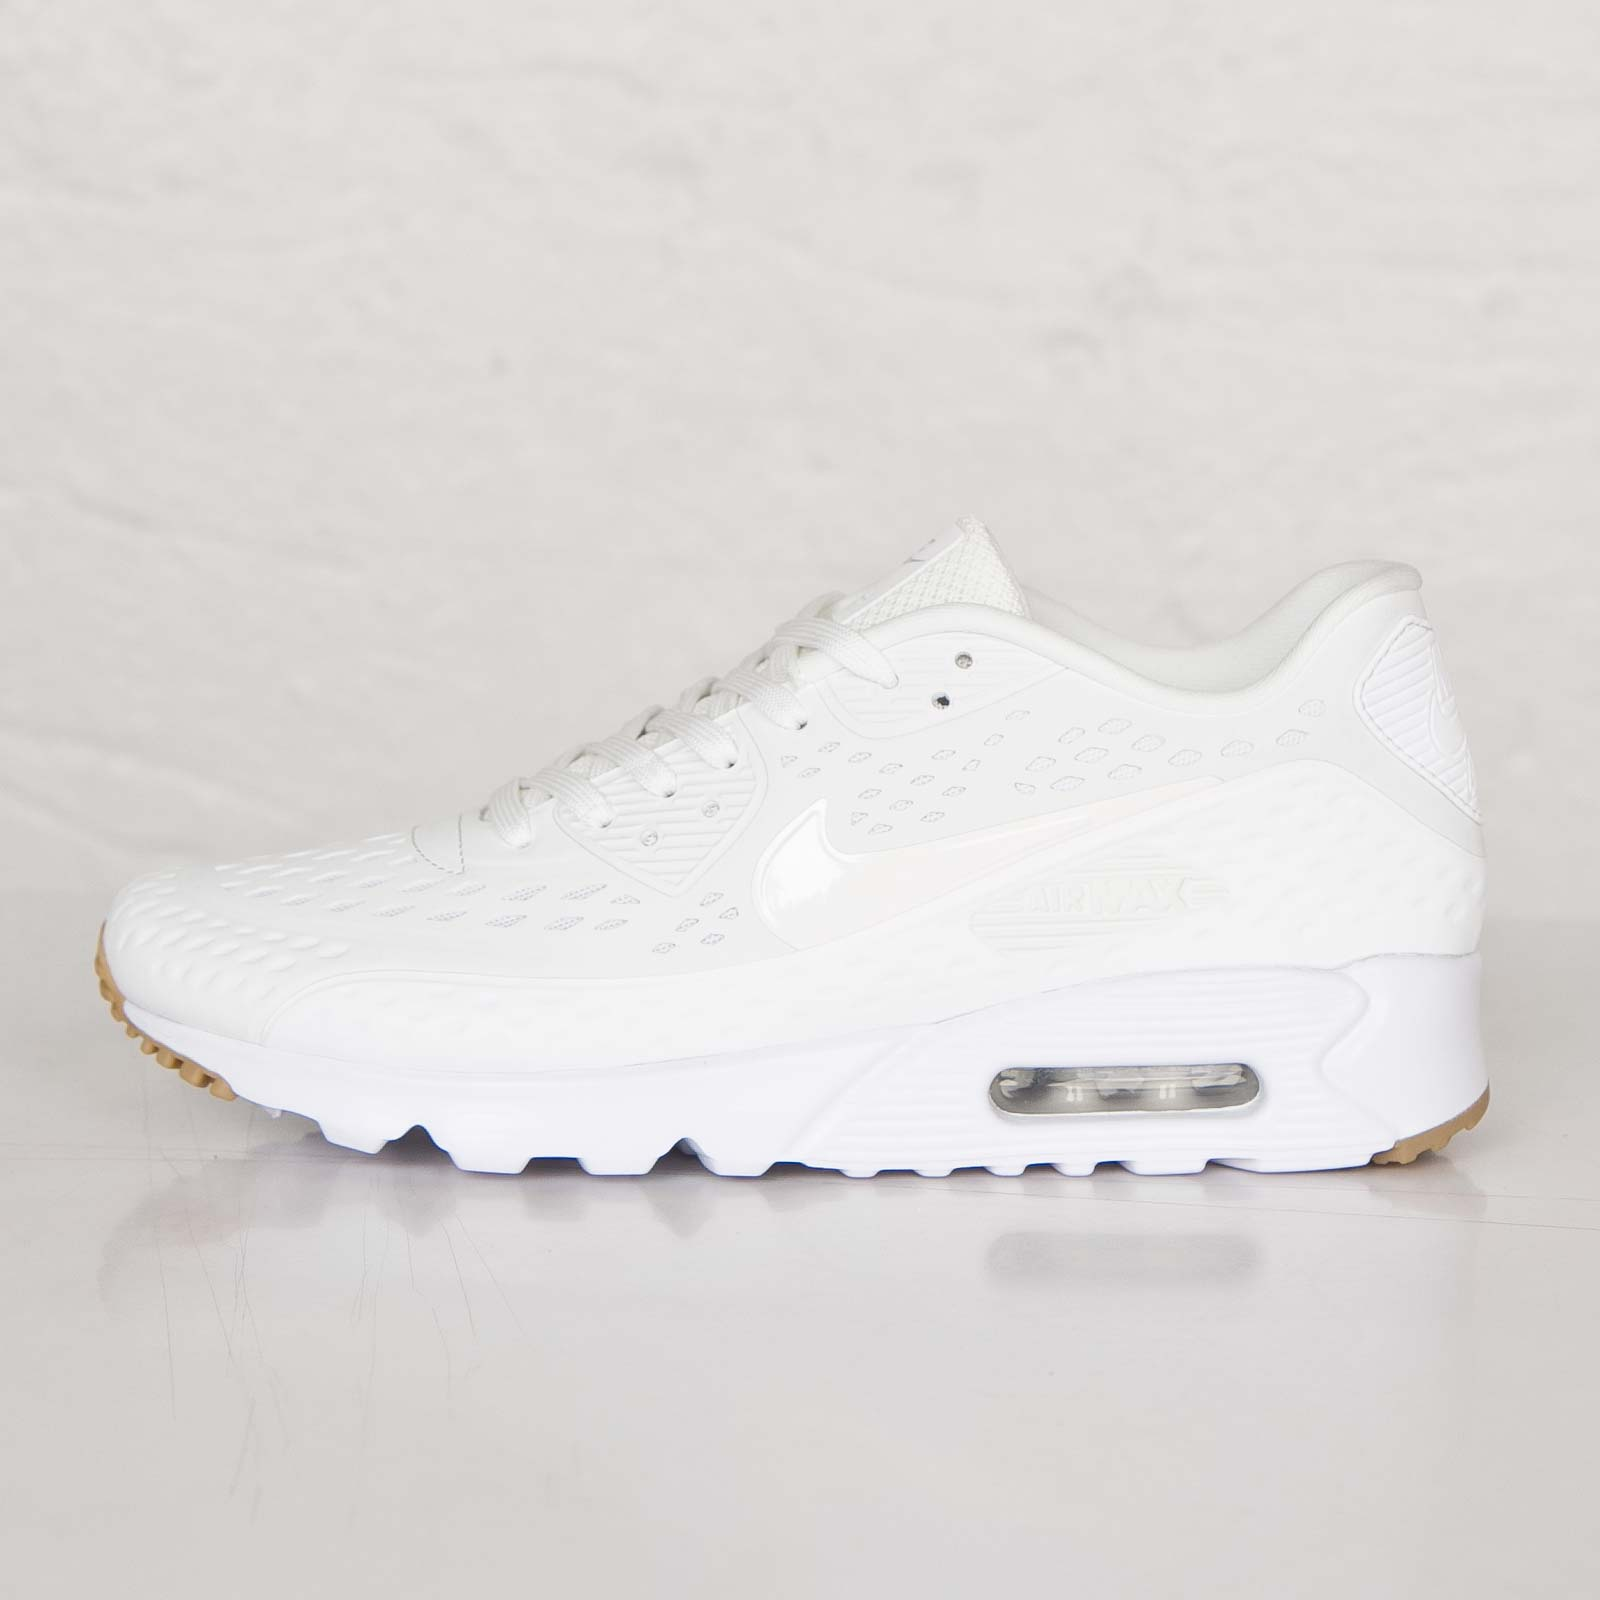 new concept bdb29 4d1a0 Nike Air Max 90 Ultra Br - 725222-100 - Sneakersnstuff   sneakers    streetwear online since 1999